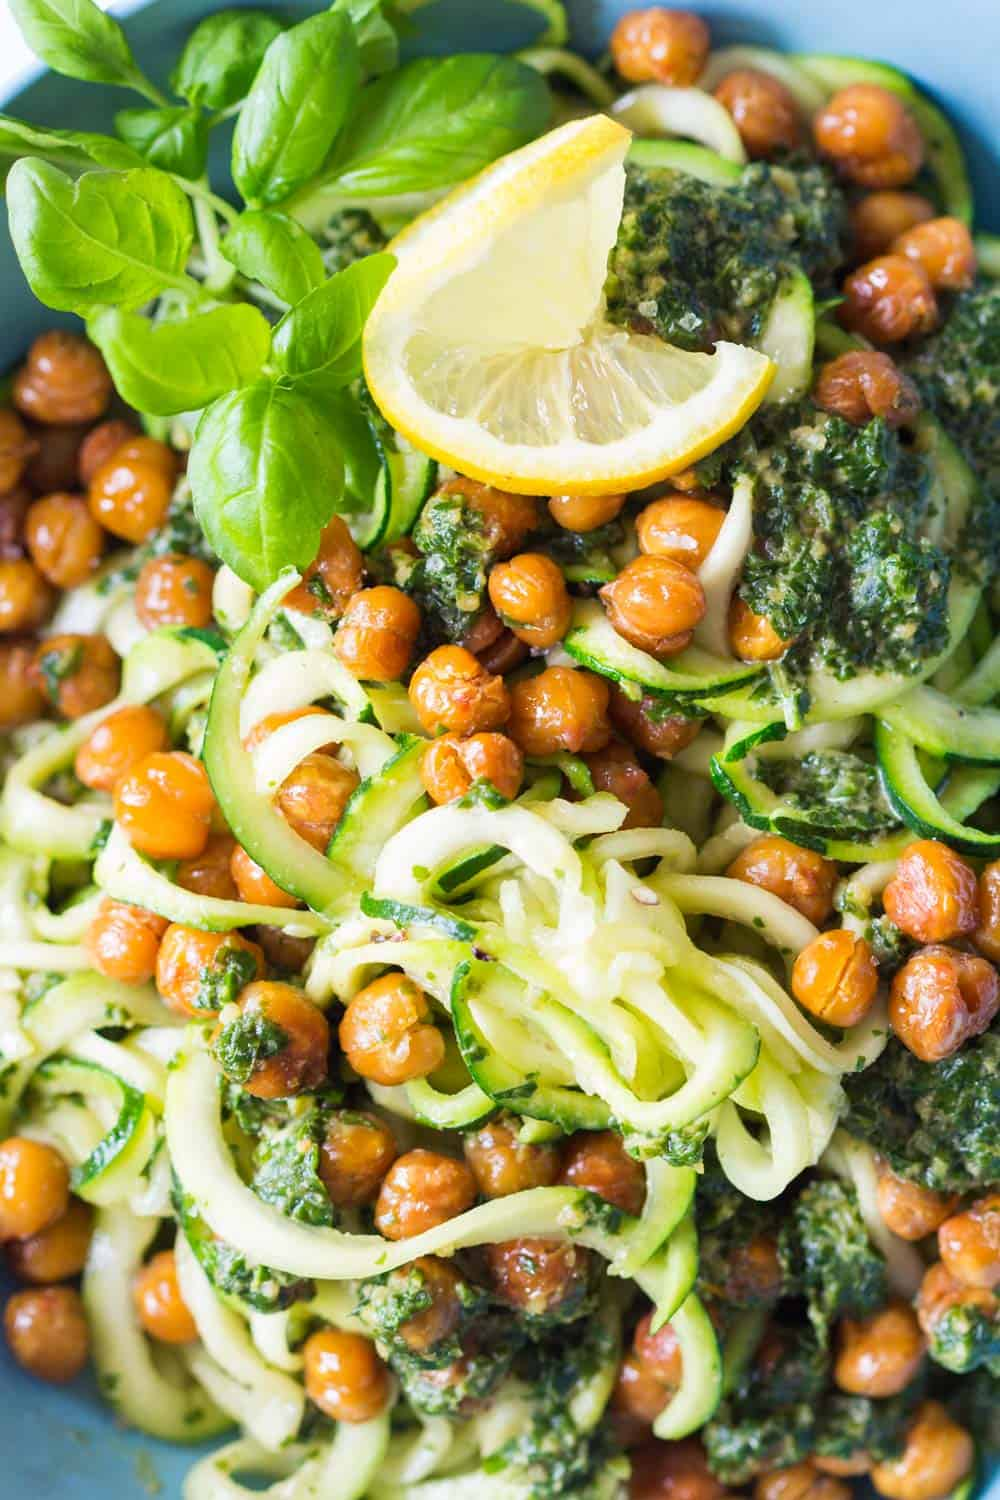 Zucchini noodles served with roasted chickpeas and tahini herb sauce, garnished with lemon slice and fresh basil leaves.